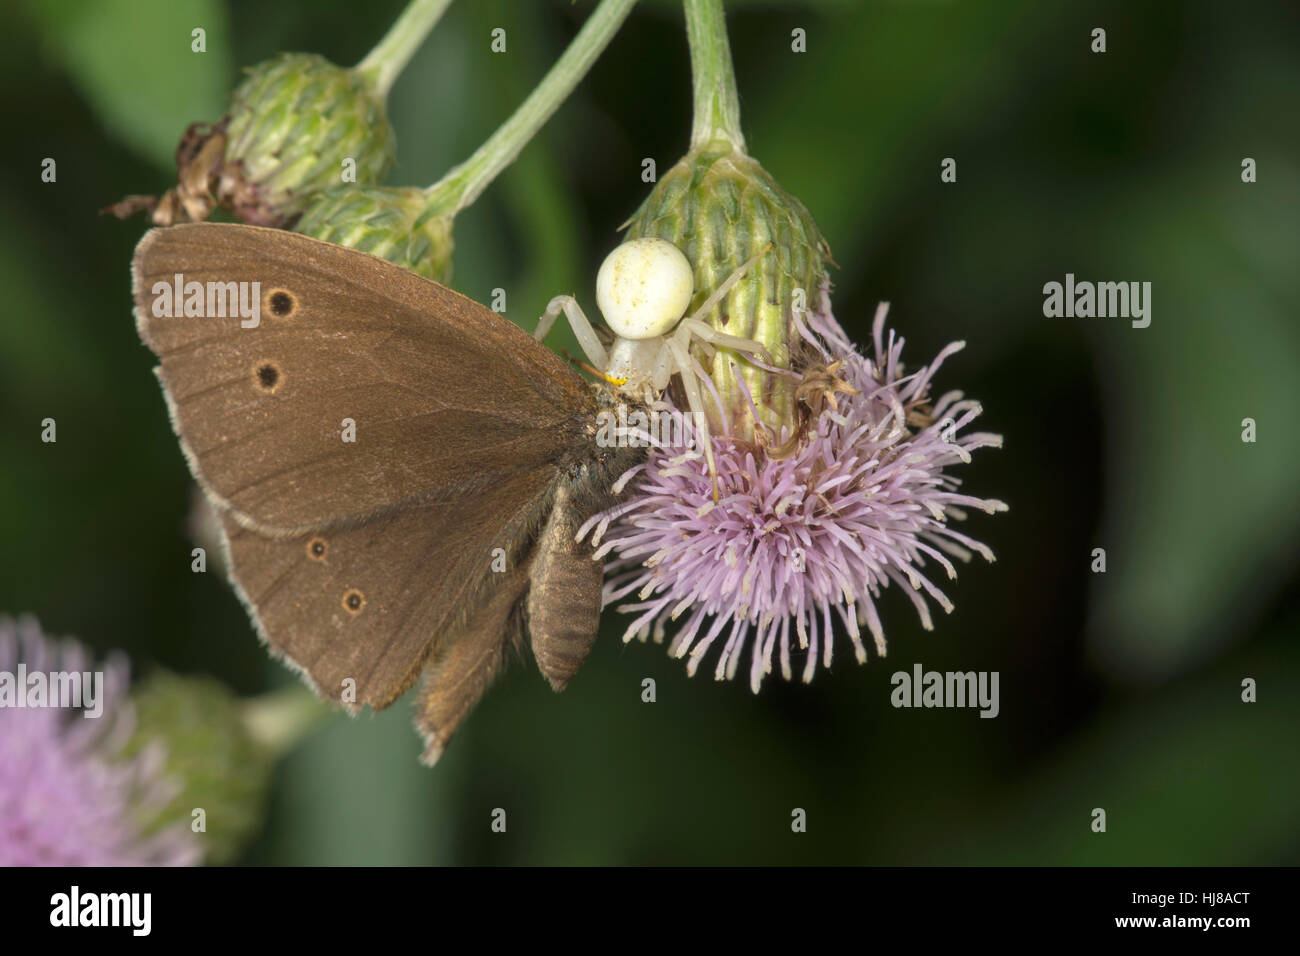 Crab spider (Misumena vatia) with Ringlet (Aphantopus hyperantus) as prey on creeping thistle, Baden-Württemberg, - Stock Image